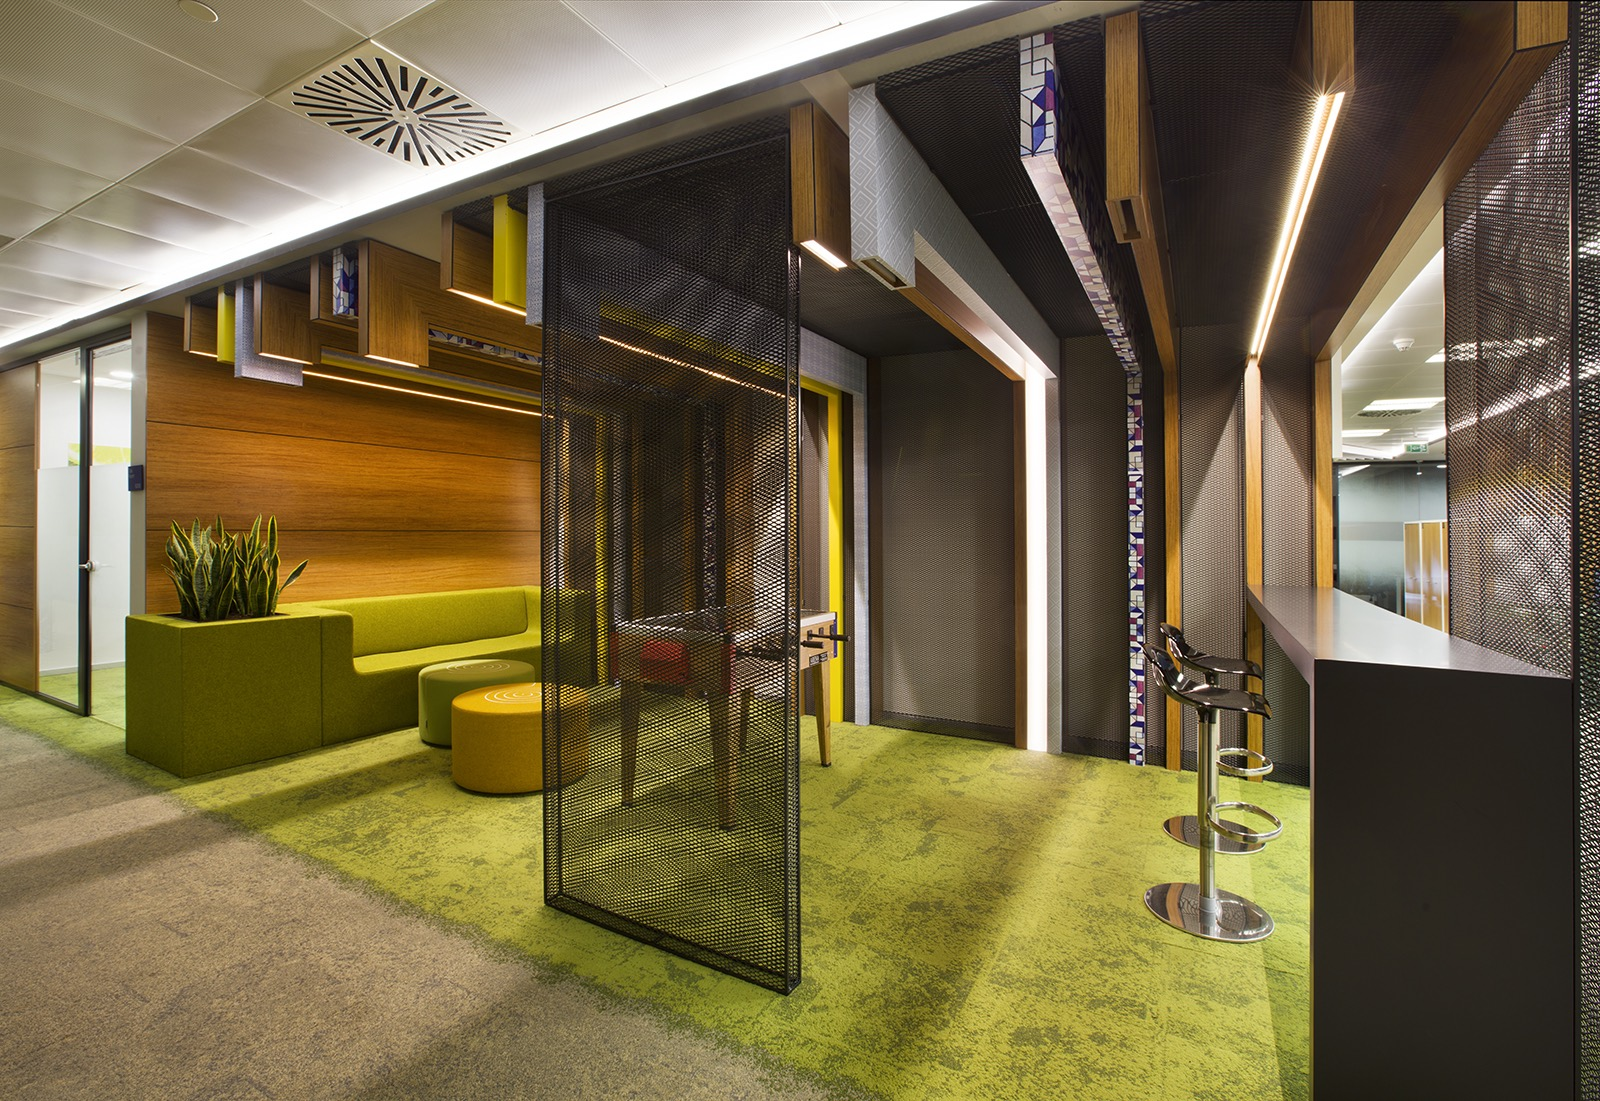 A Look Inside PepsiCo's New Istanbul Office - Officelovin'